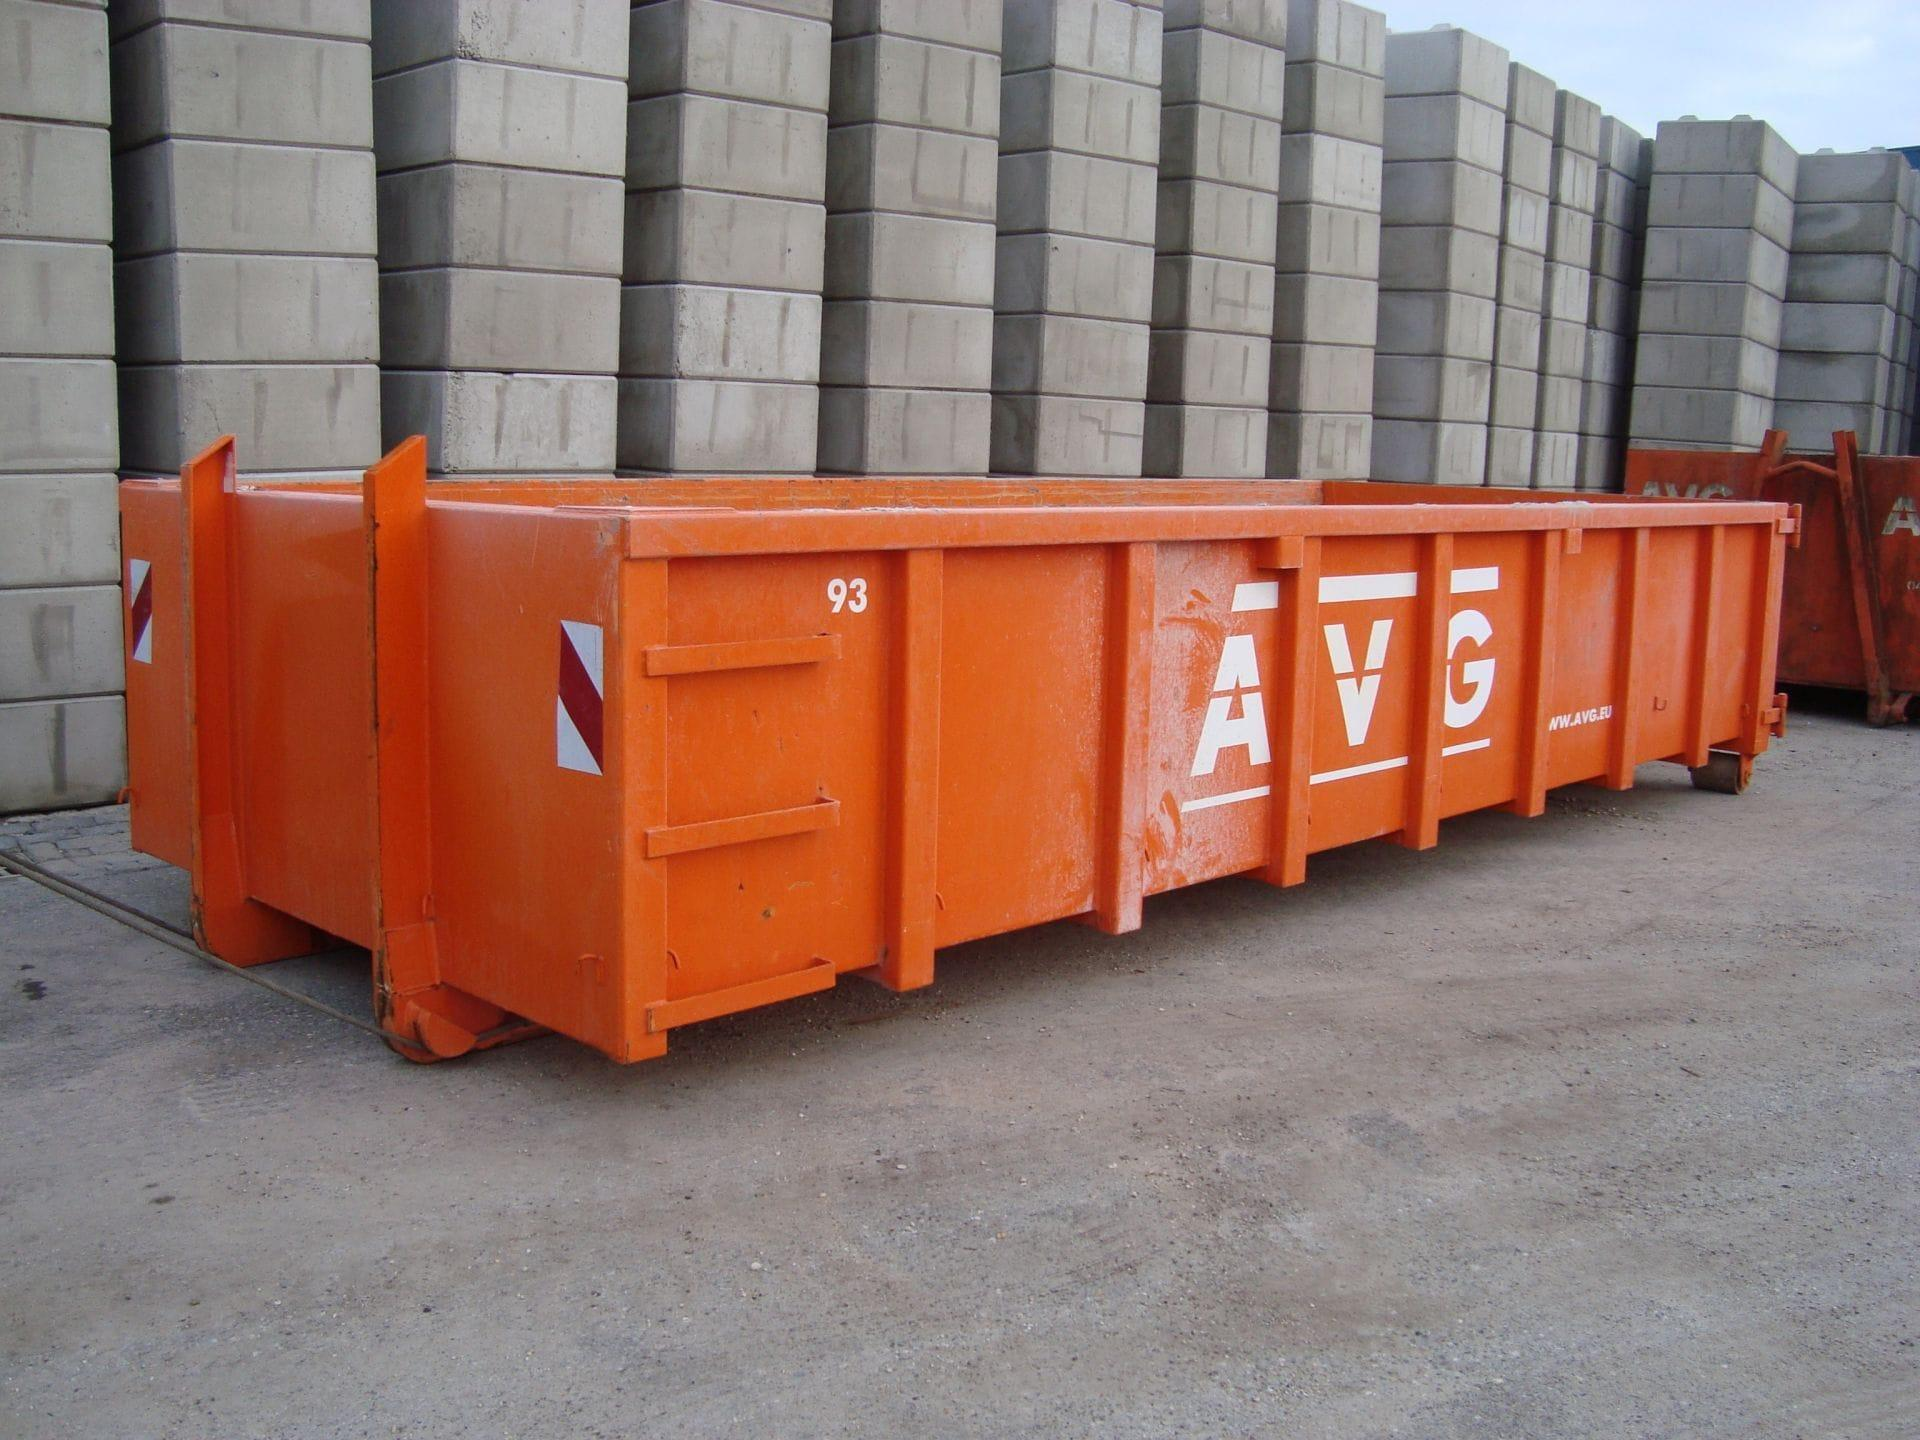 lange-container-15-avg-bouwstoffen